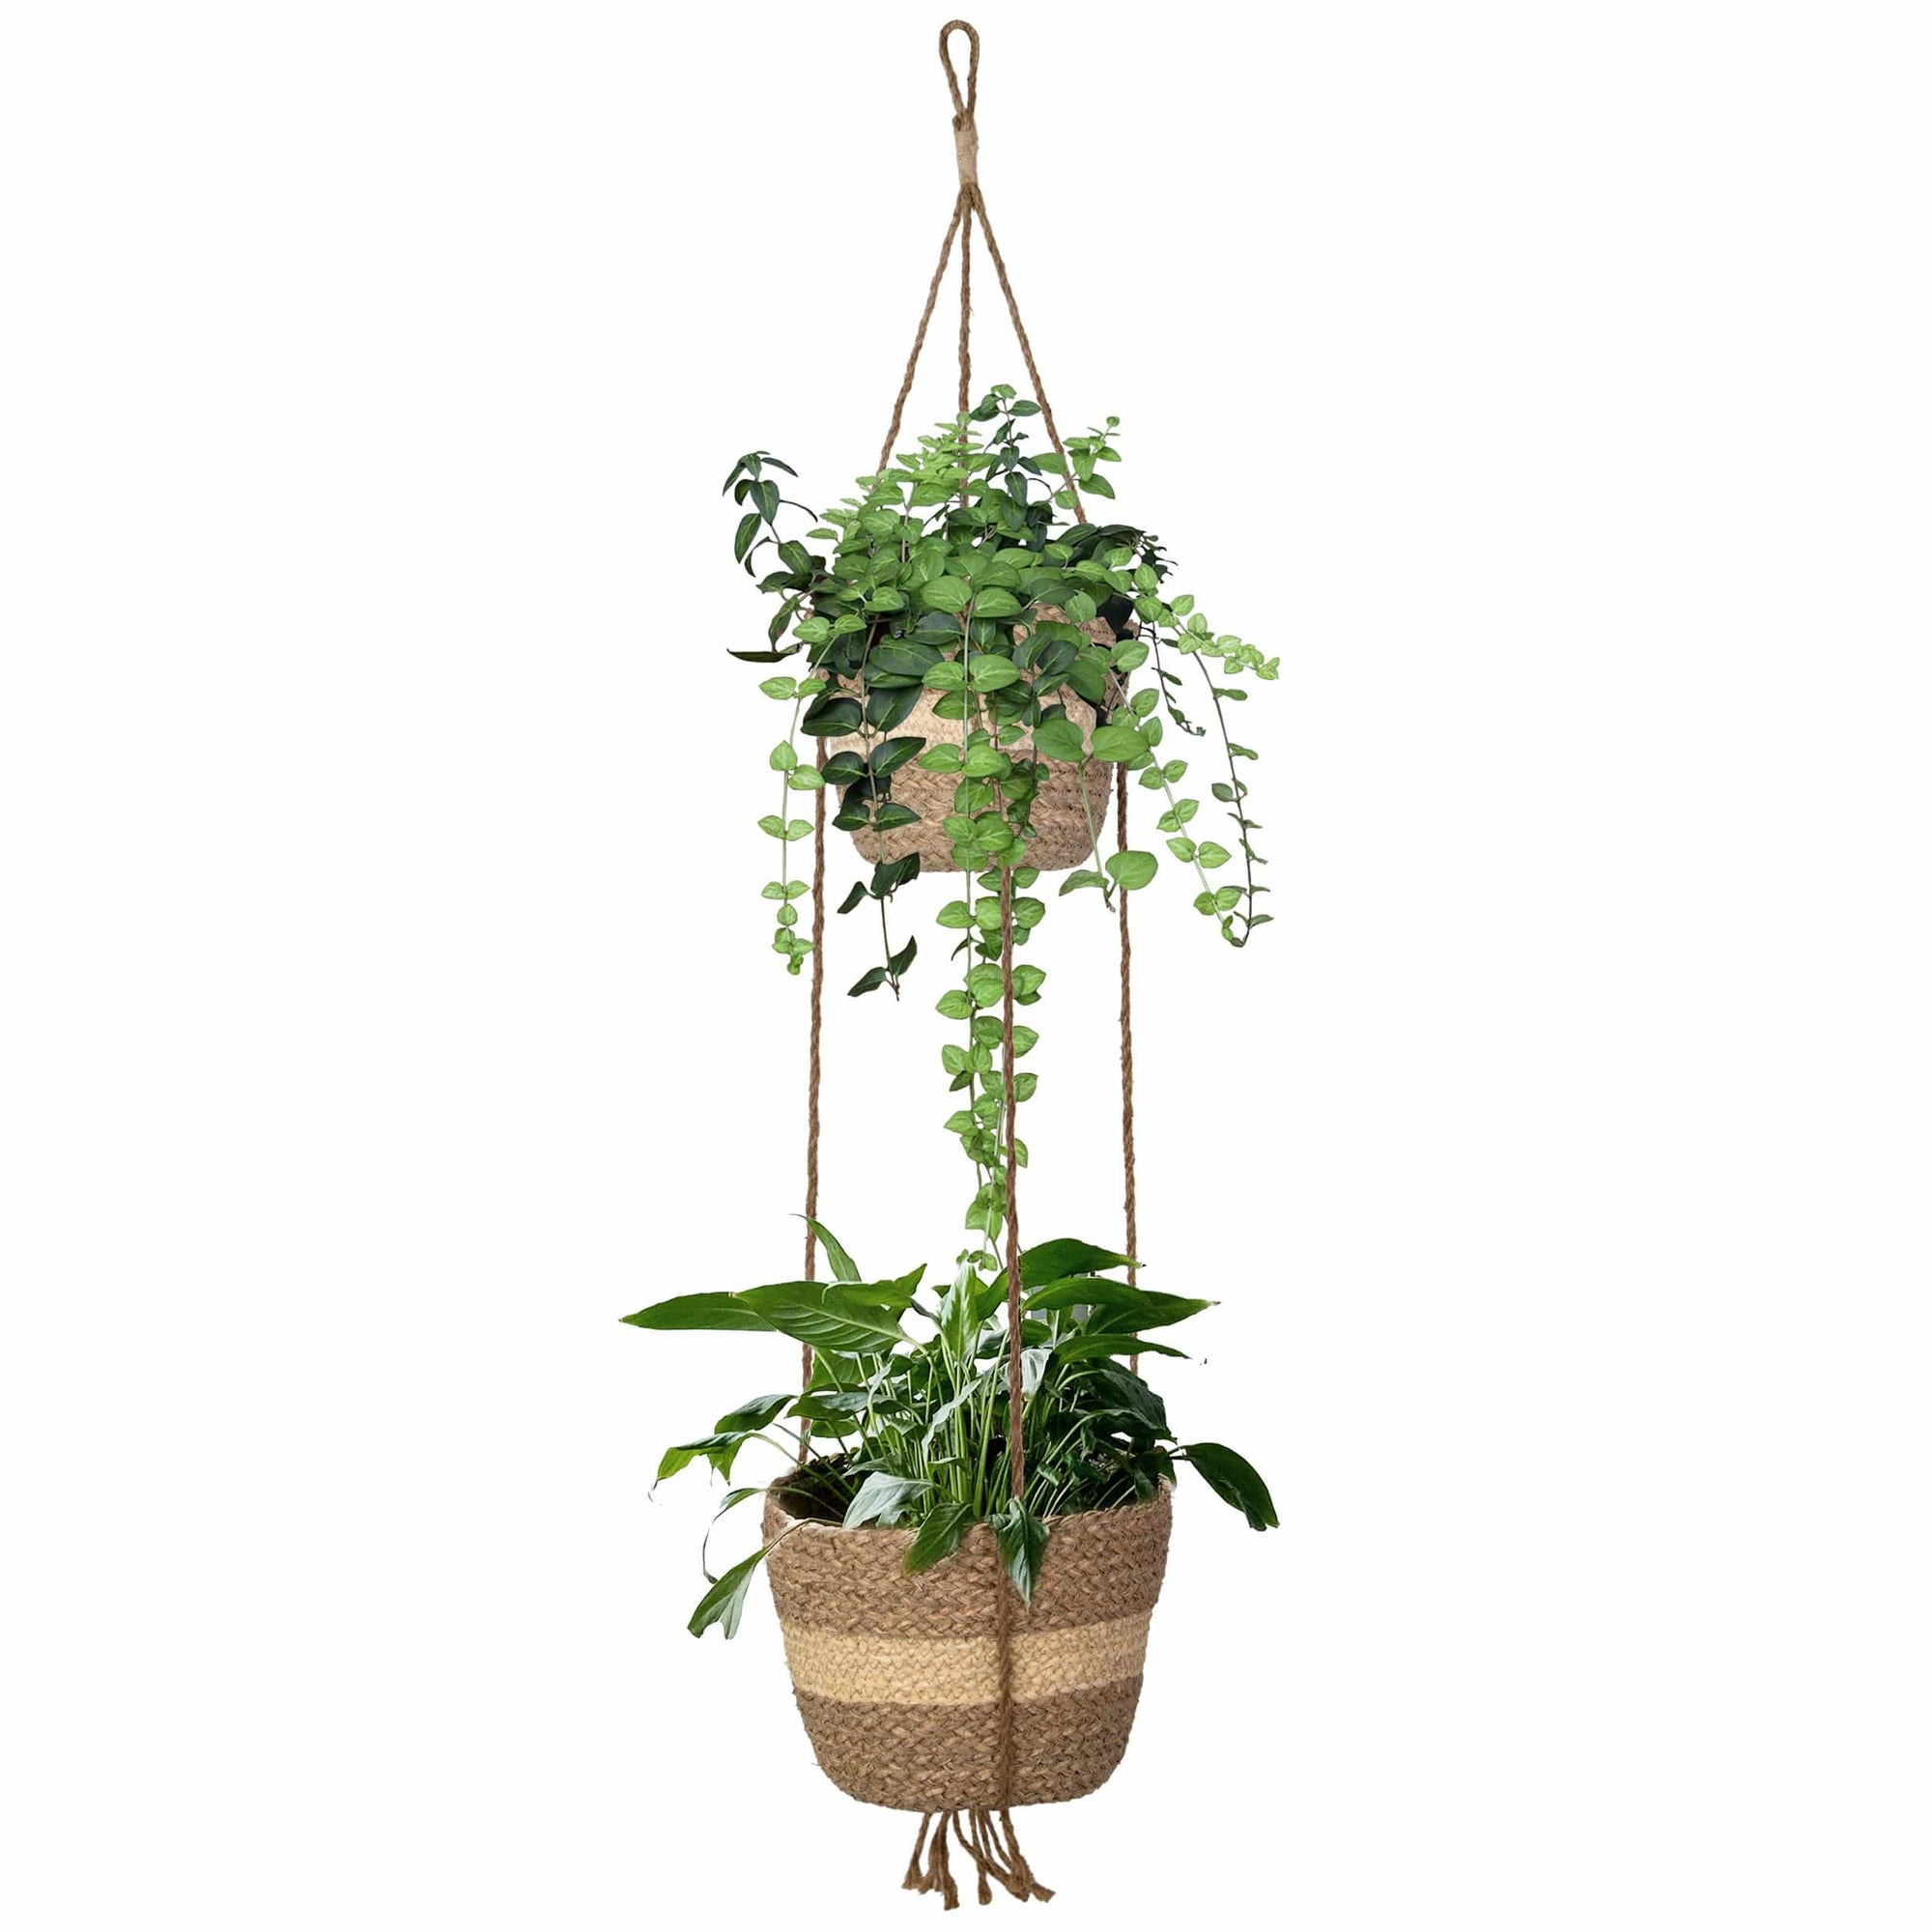 Made Terra Planter Hanger Natural Stripe 2 Tier Woven Hanging Plant Pot Cover Seagrass Wicker Wall Hanging Planter Basket for Flower Pot, Indoor Outdoor Garden Balcony Home Decoration (Natural)